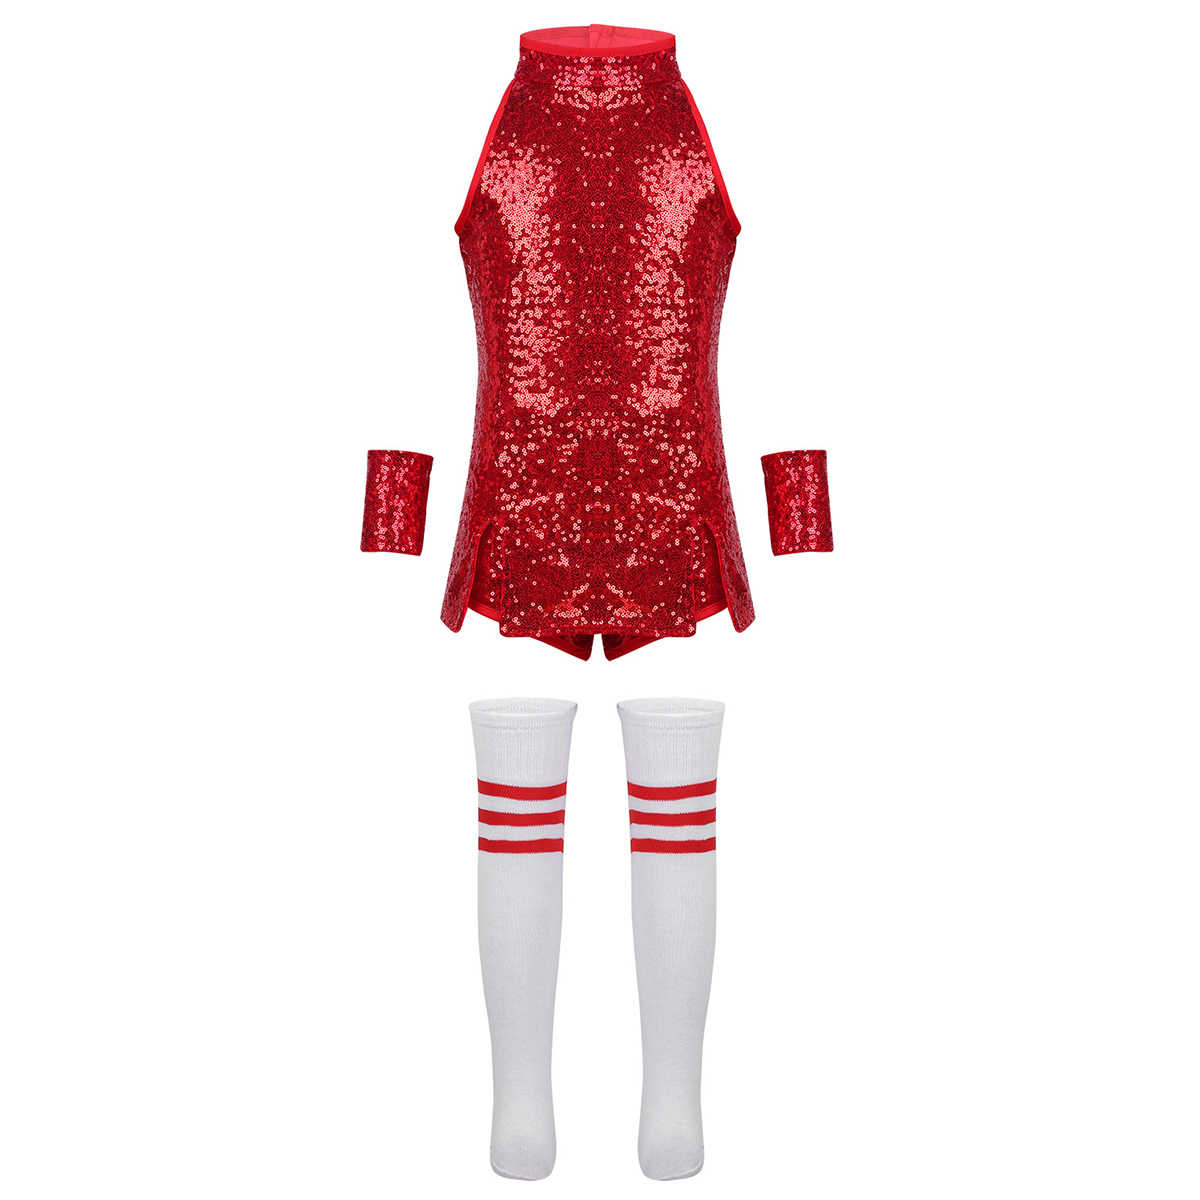 f49c33dbcd397 ... New Kids Girls Hiphop Jazz Dance Costume Performance Street Dance  Clothes Shiny Sequins Sleeveless Outfit Vest ...